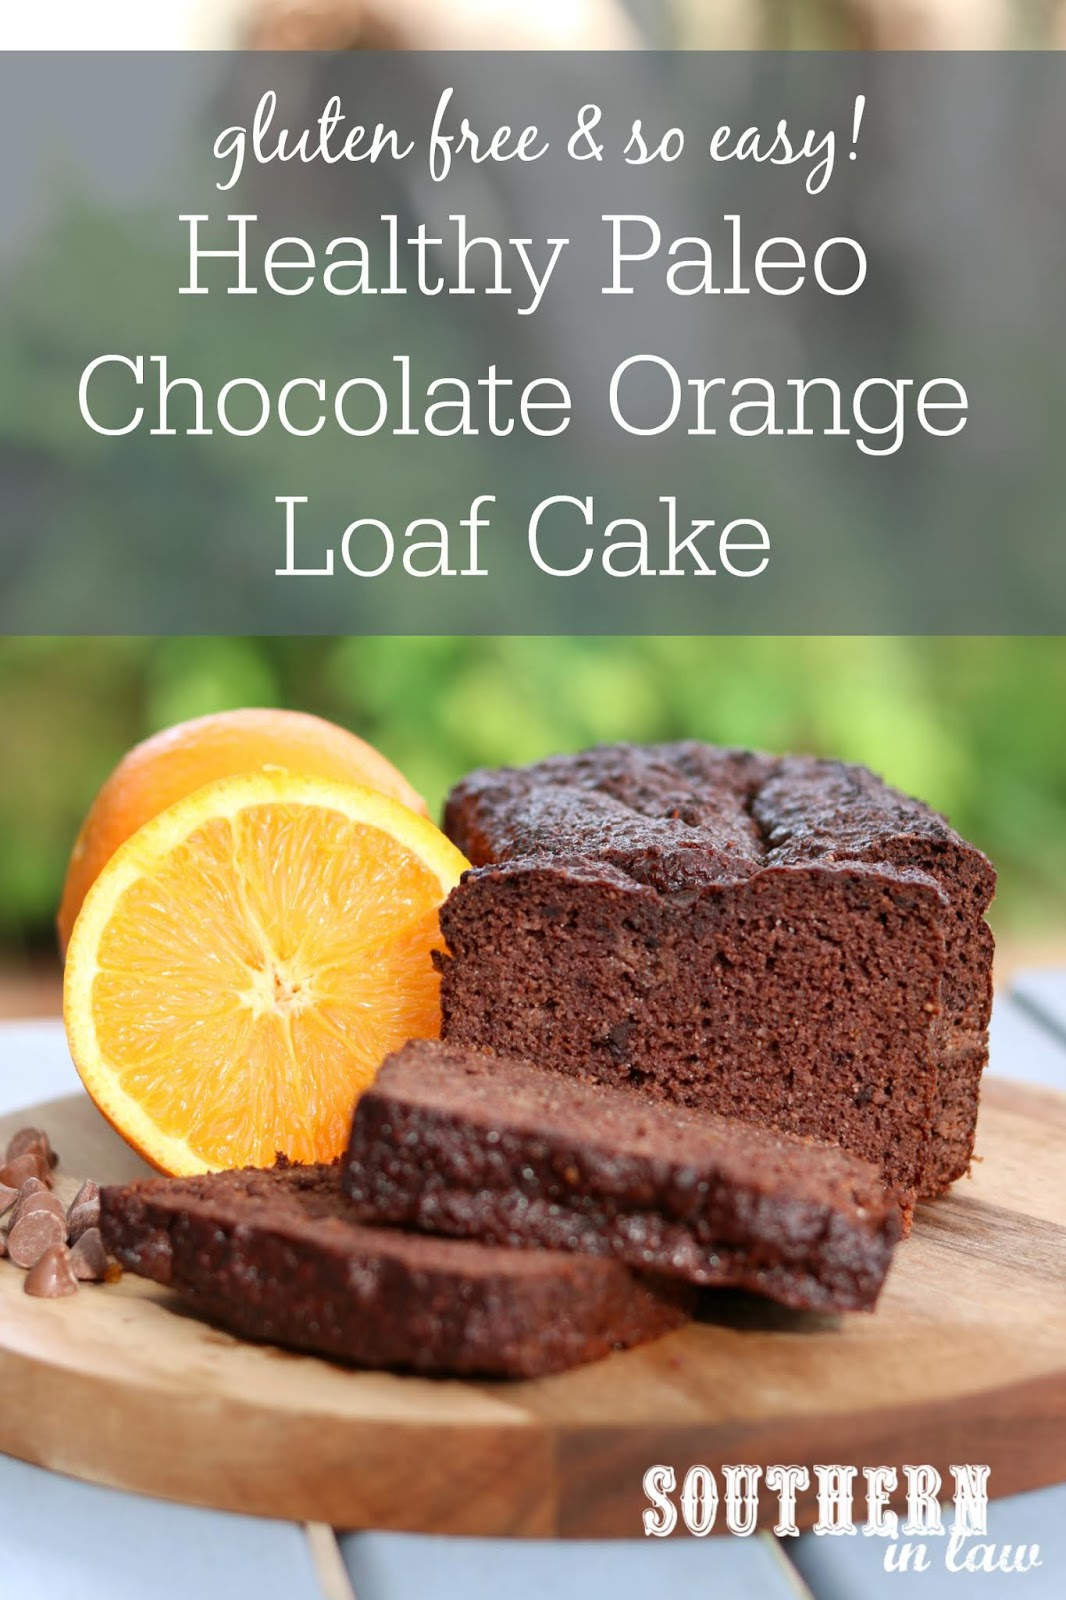 Southern In Law: Recipe: Healthy Paleo Chocolate Orange Loaf